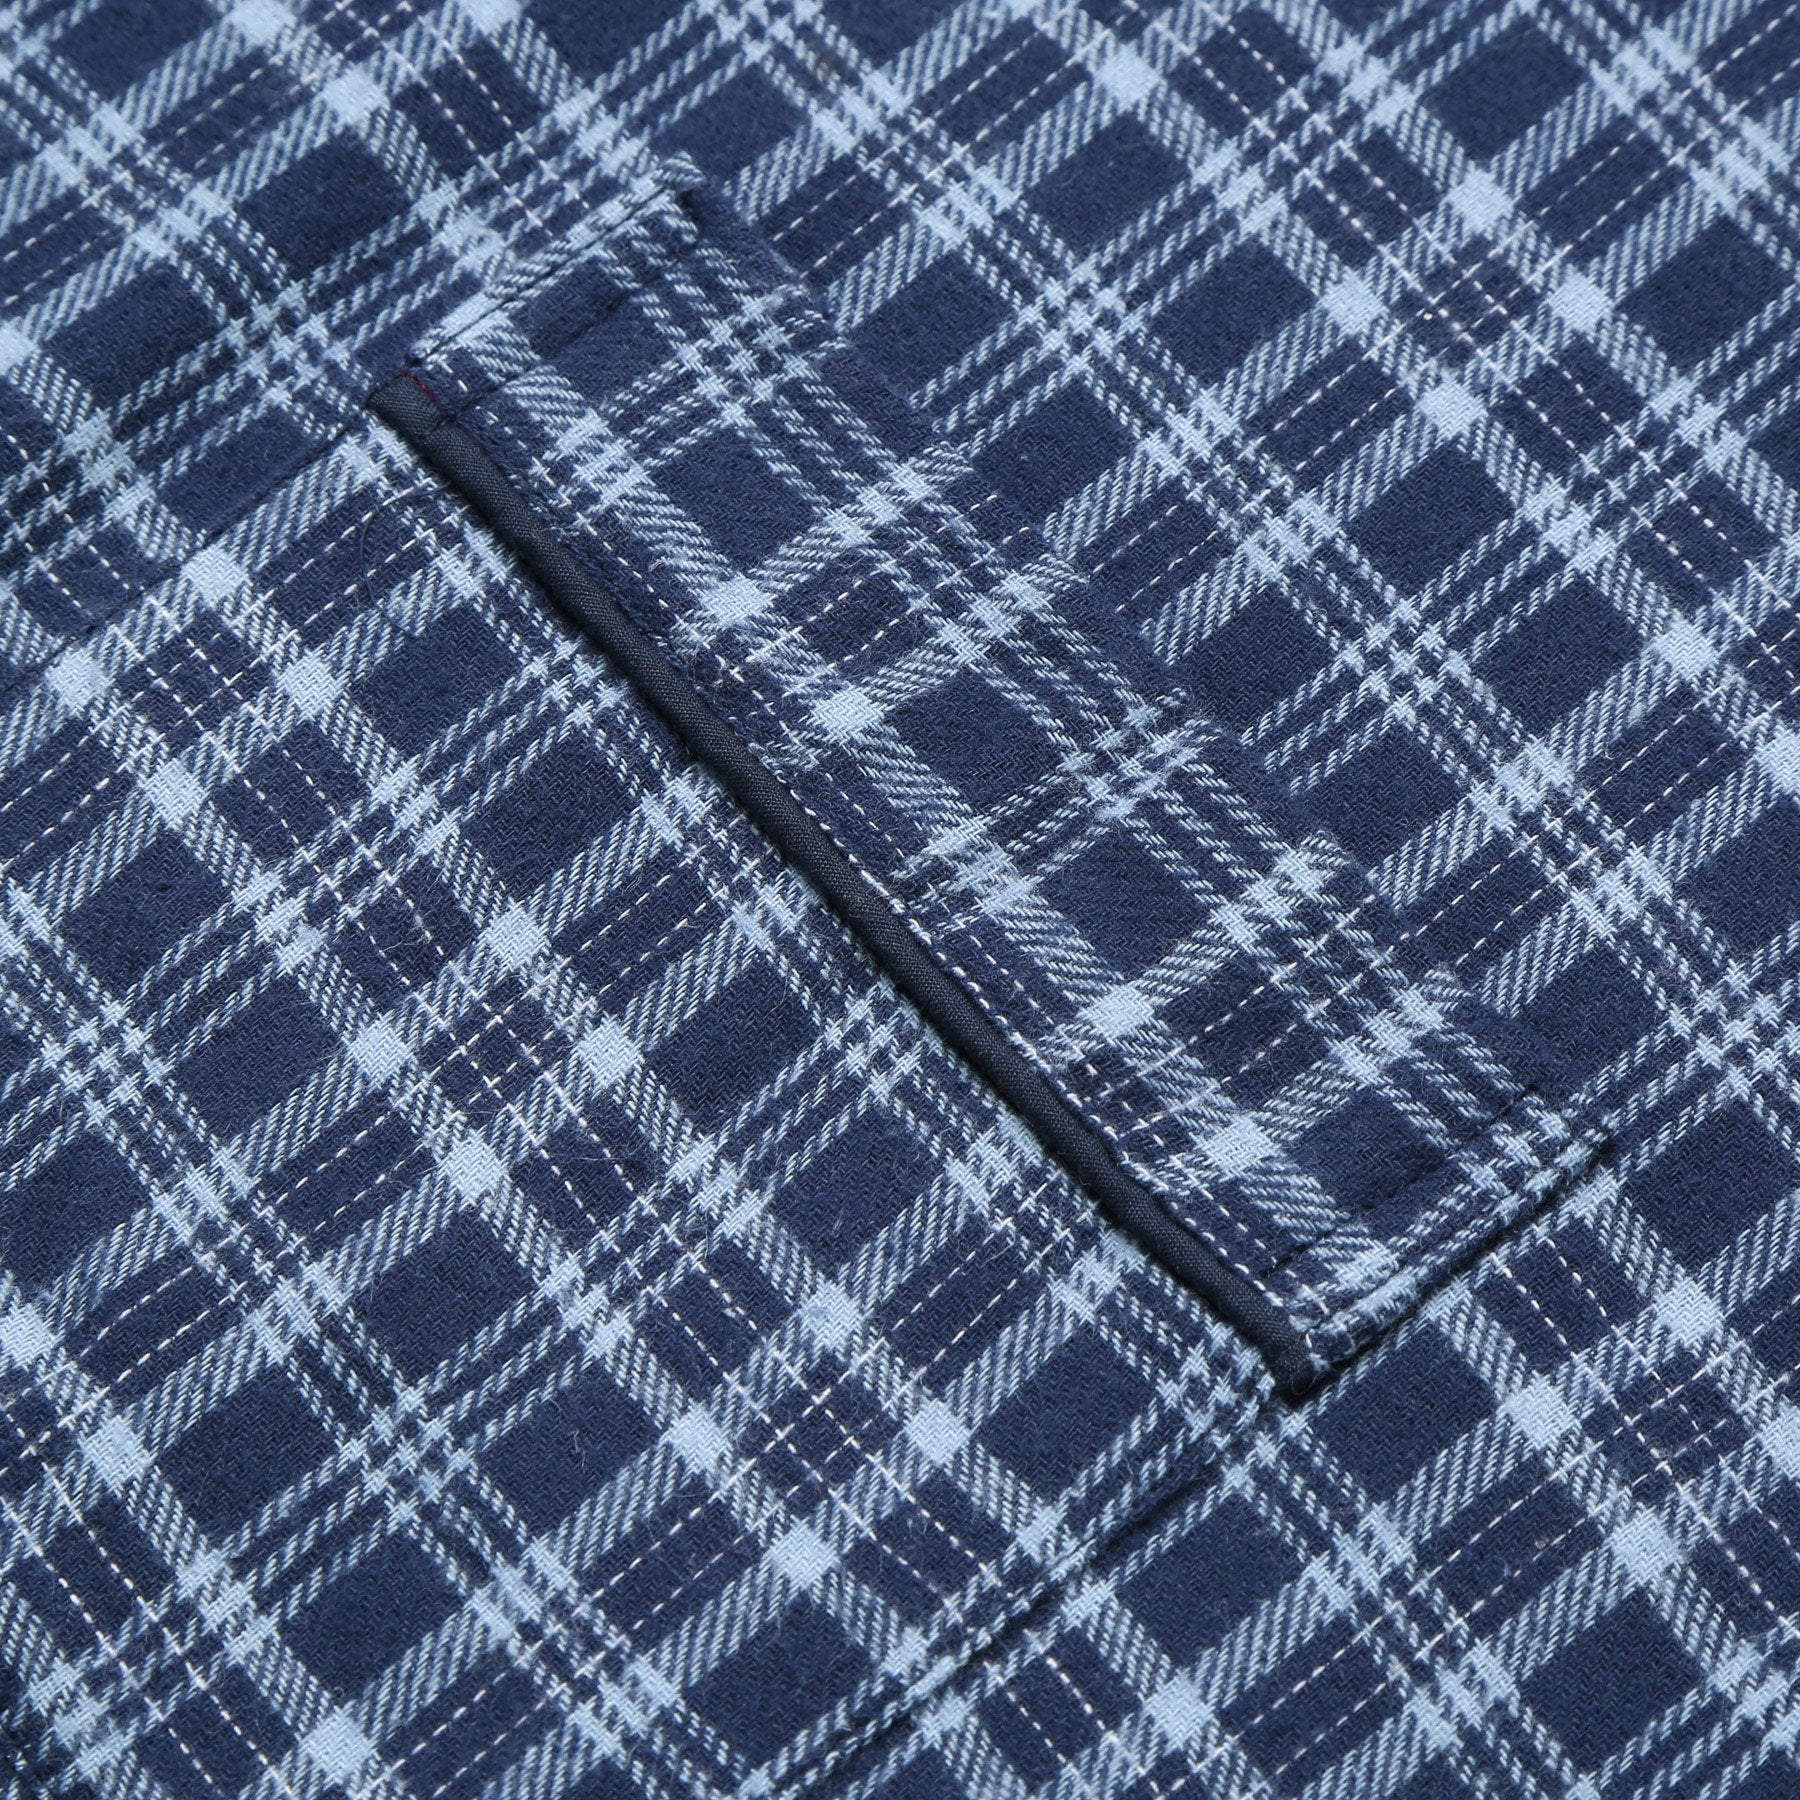 Rael Brook Standard Fit Navy With Light Blue Check Brushed Cotton Pyjama Set Cuff Detail